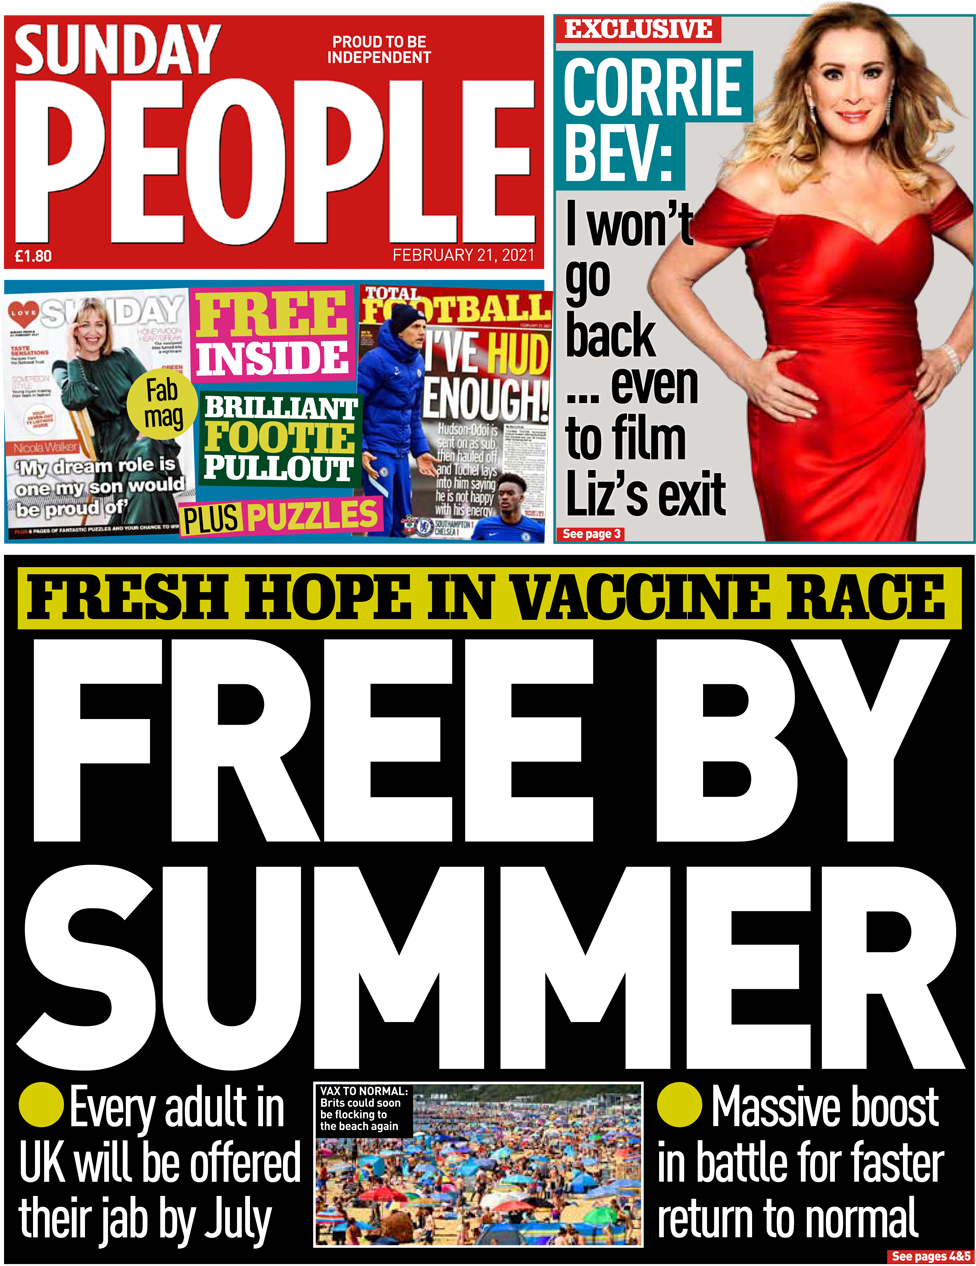 The Sunday People front page 21 February 2021